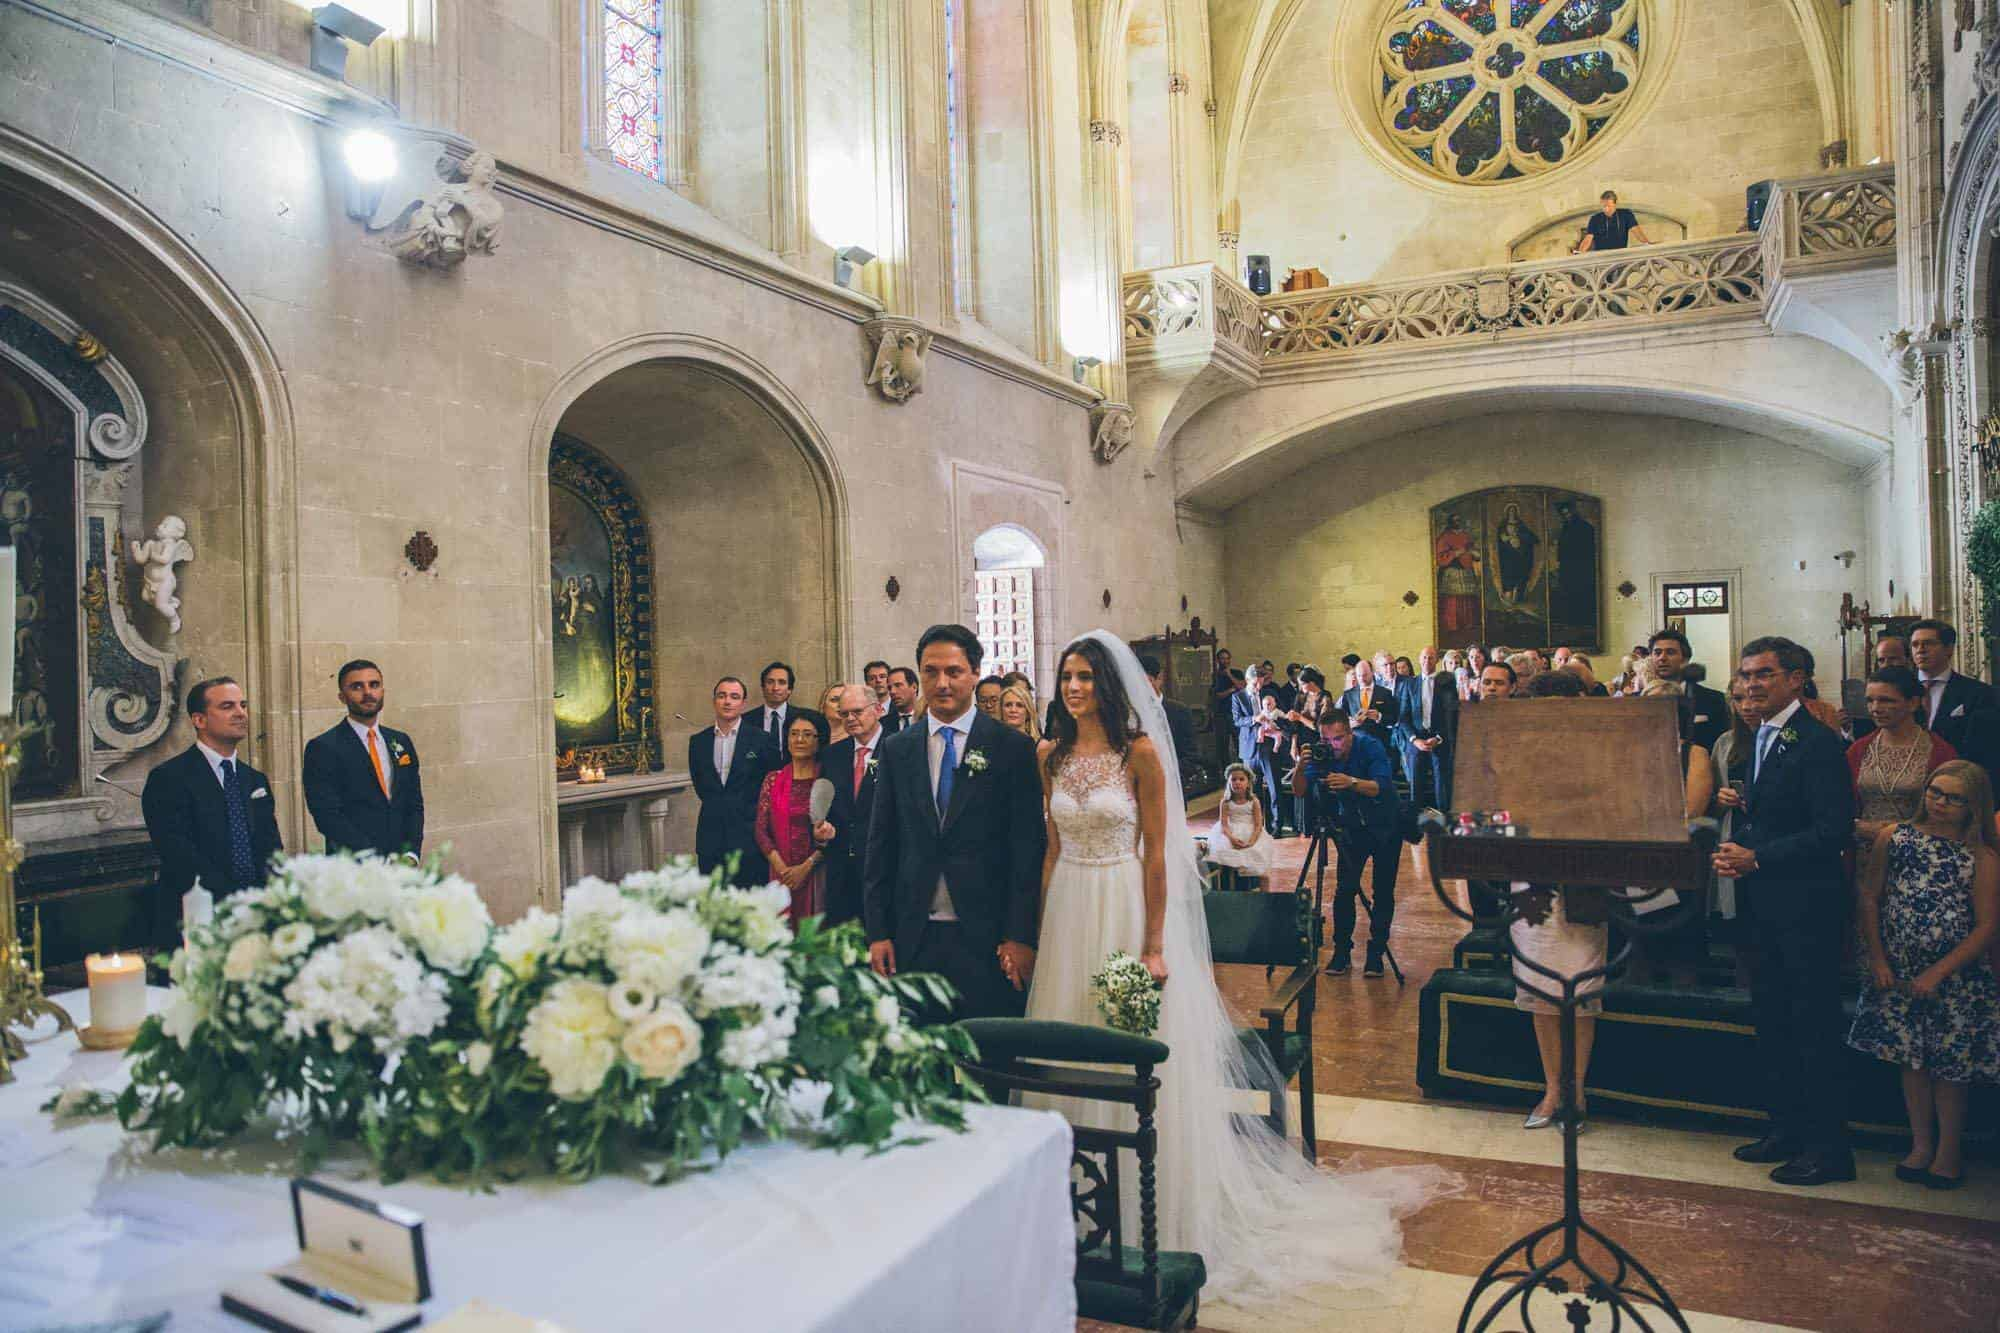 Married in Mallorca - the wedding service in a grand church